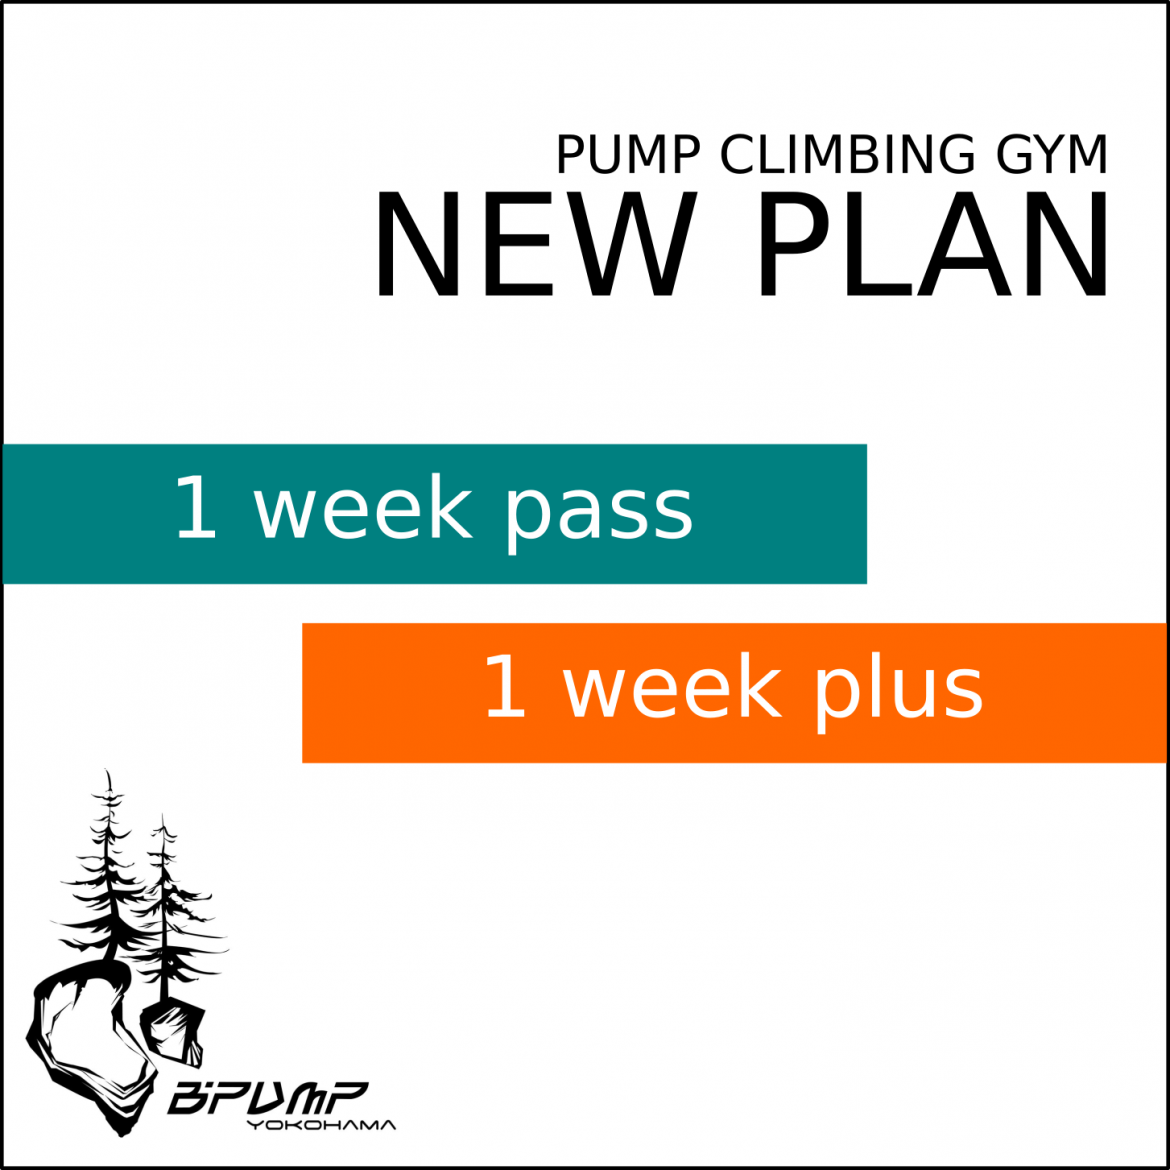 NEW PLAN【1 week pass】&【1 week plus】